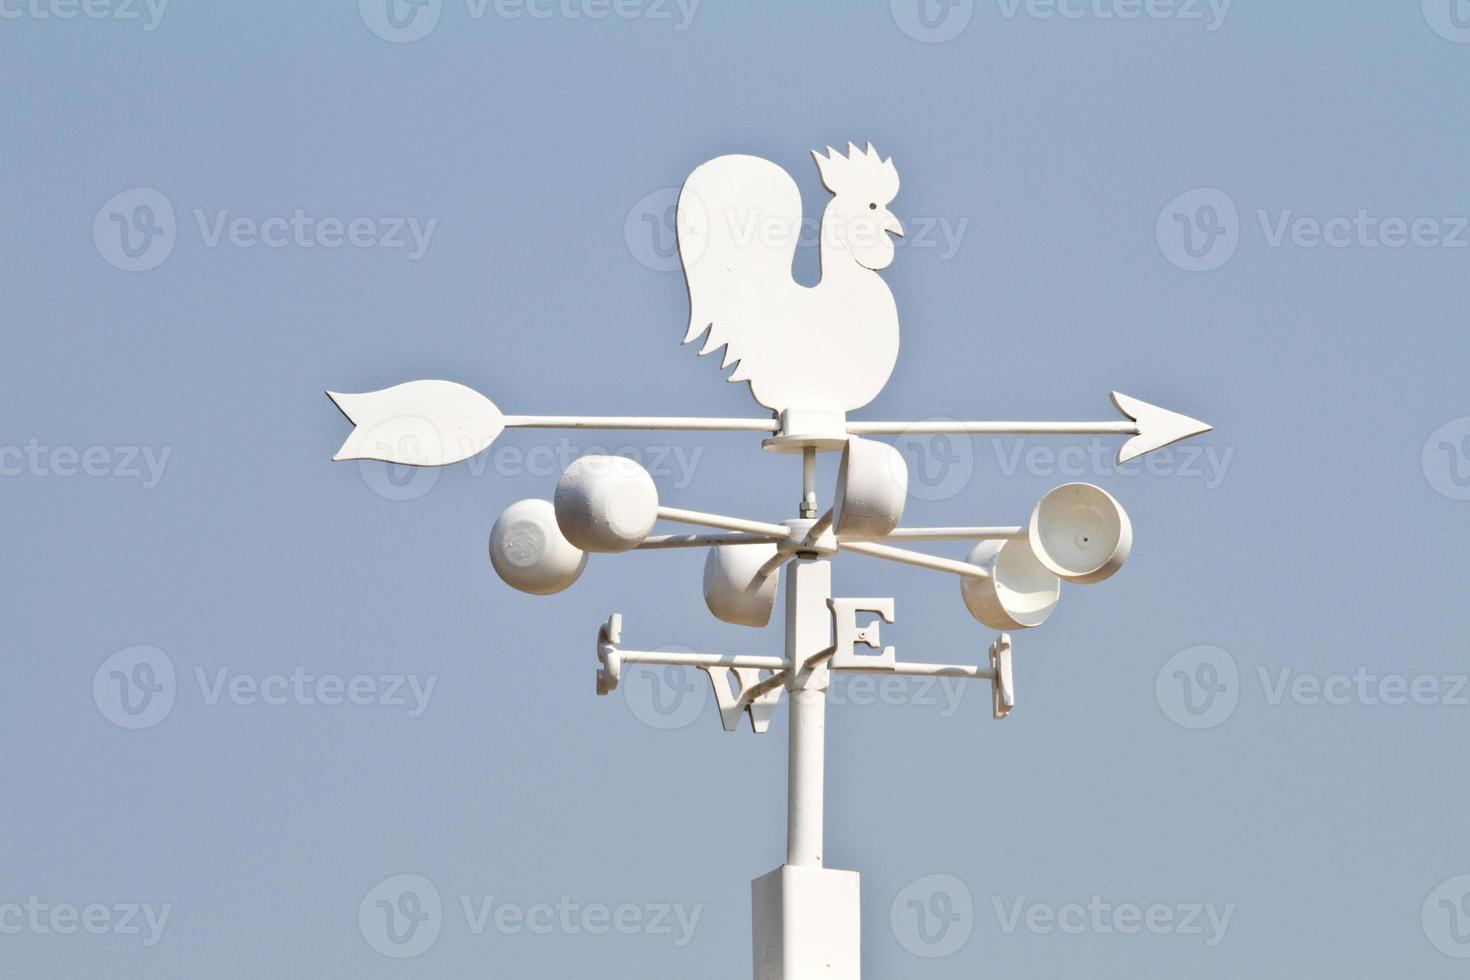 Weather vane - cockerel which reflected sun photo